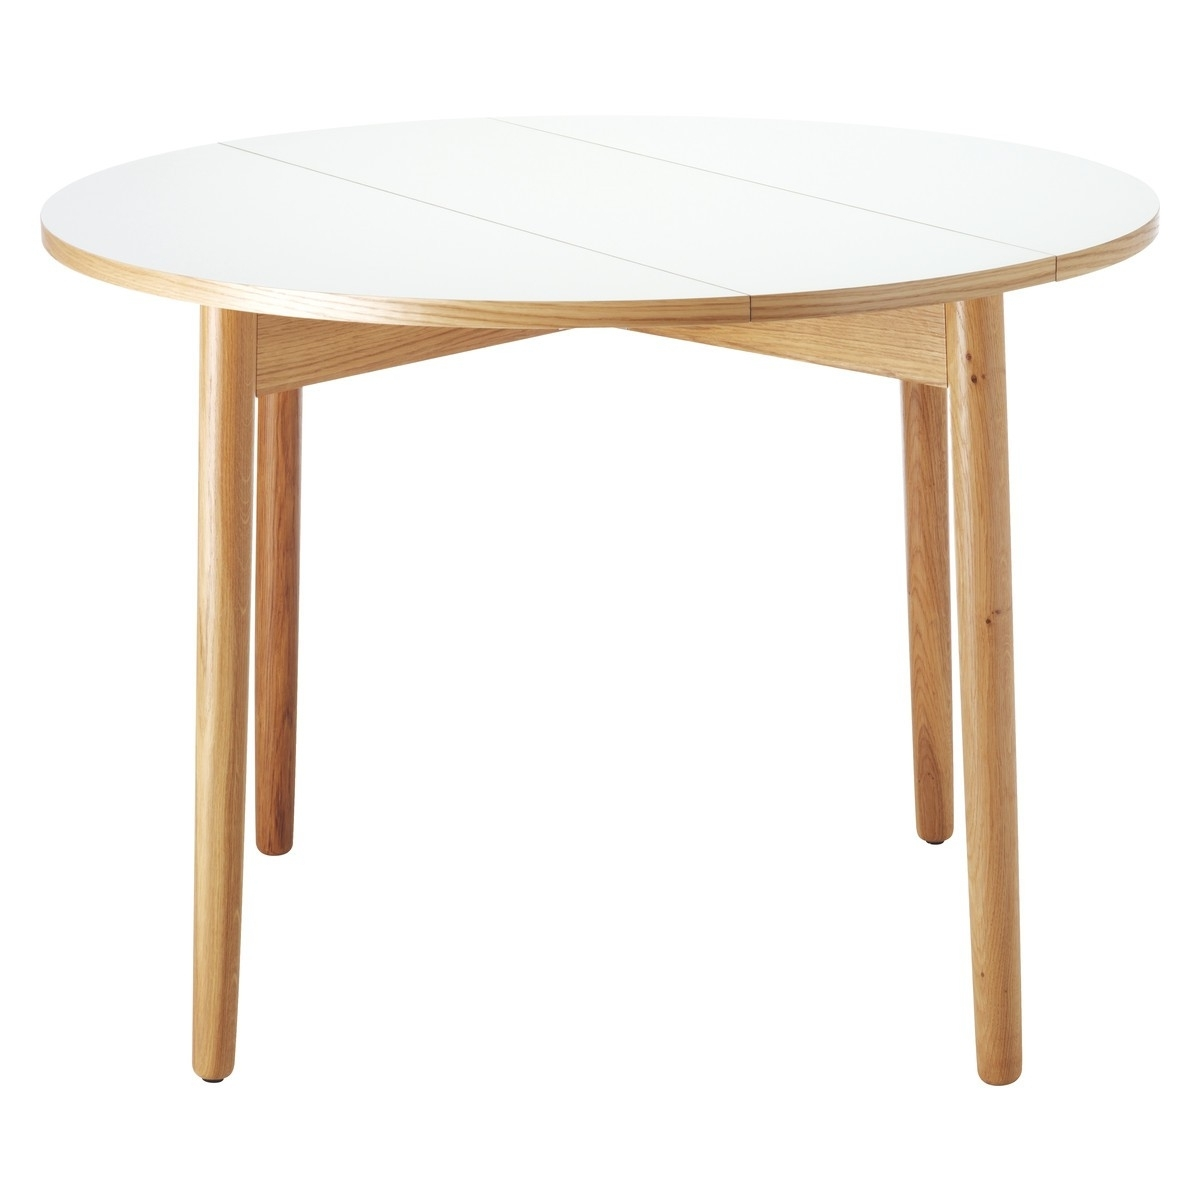 Buy Now At Habitat Uk Intended For White Circle Dining Tables (View 6 of 25)